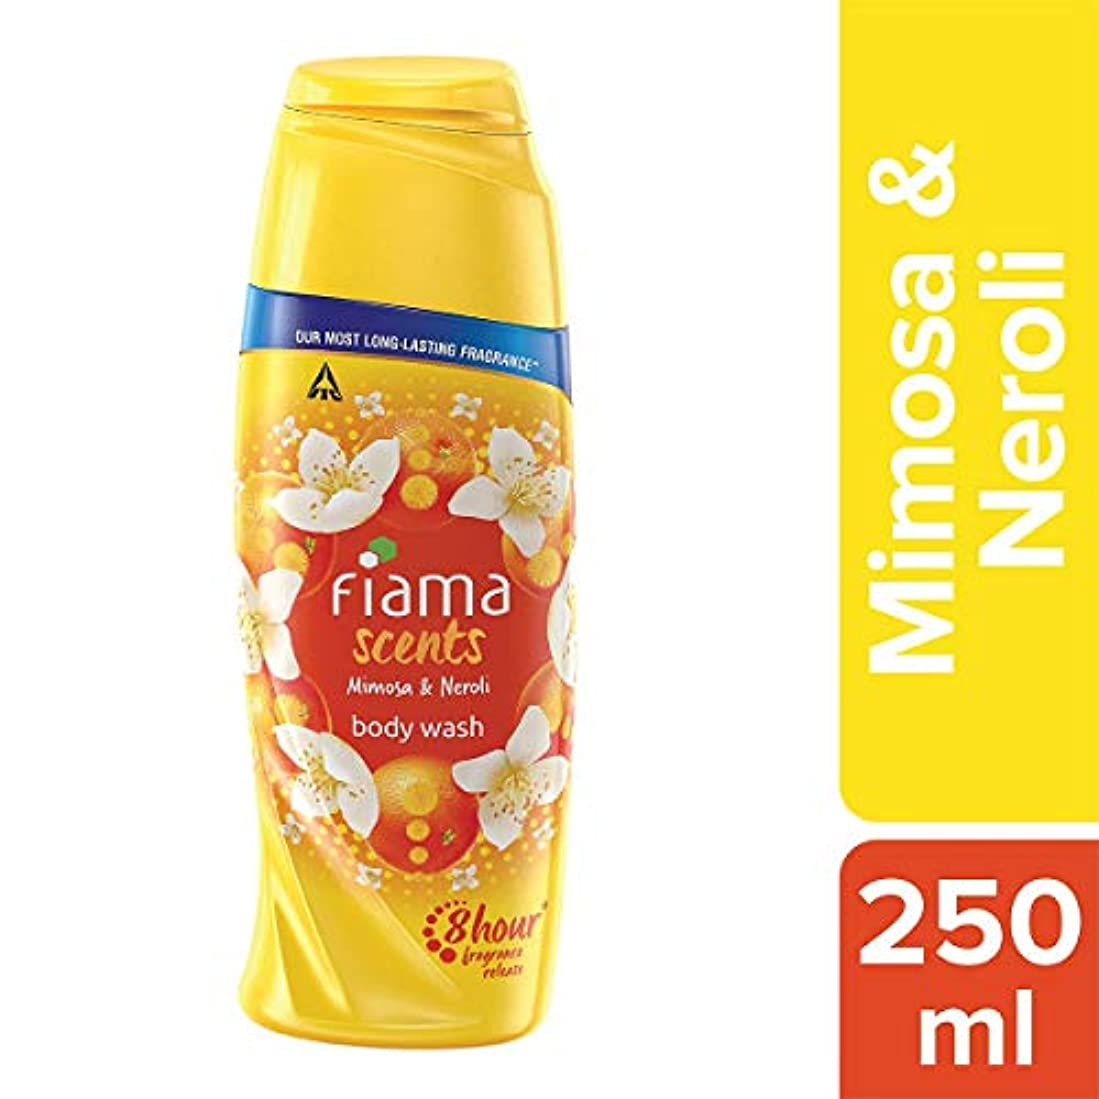 激しい雄弁無限大Fiama Scents Mimosa and Neroli Body Wash, 250 ml